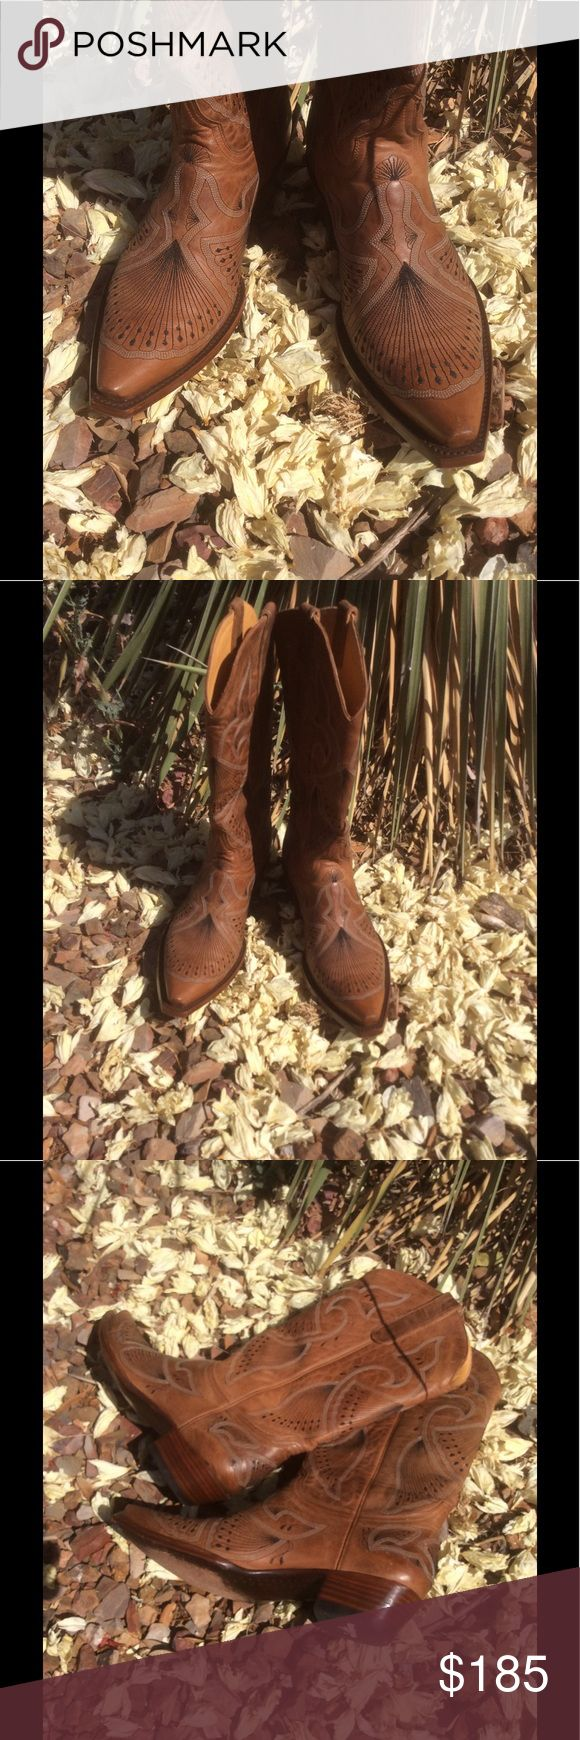 Gorgeous like new!! Old Gringo Women's boots Old Gringo's looking for a new good home! Old Gringo Shoes